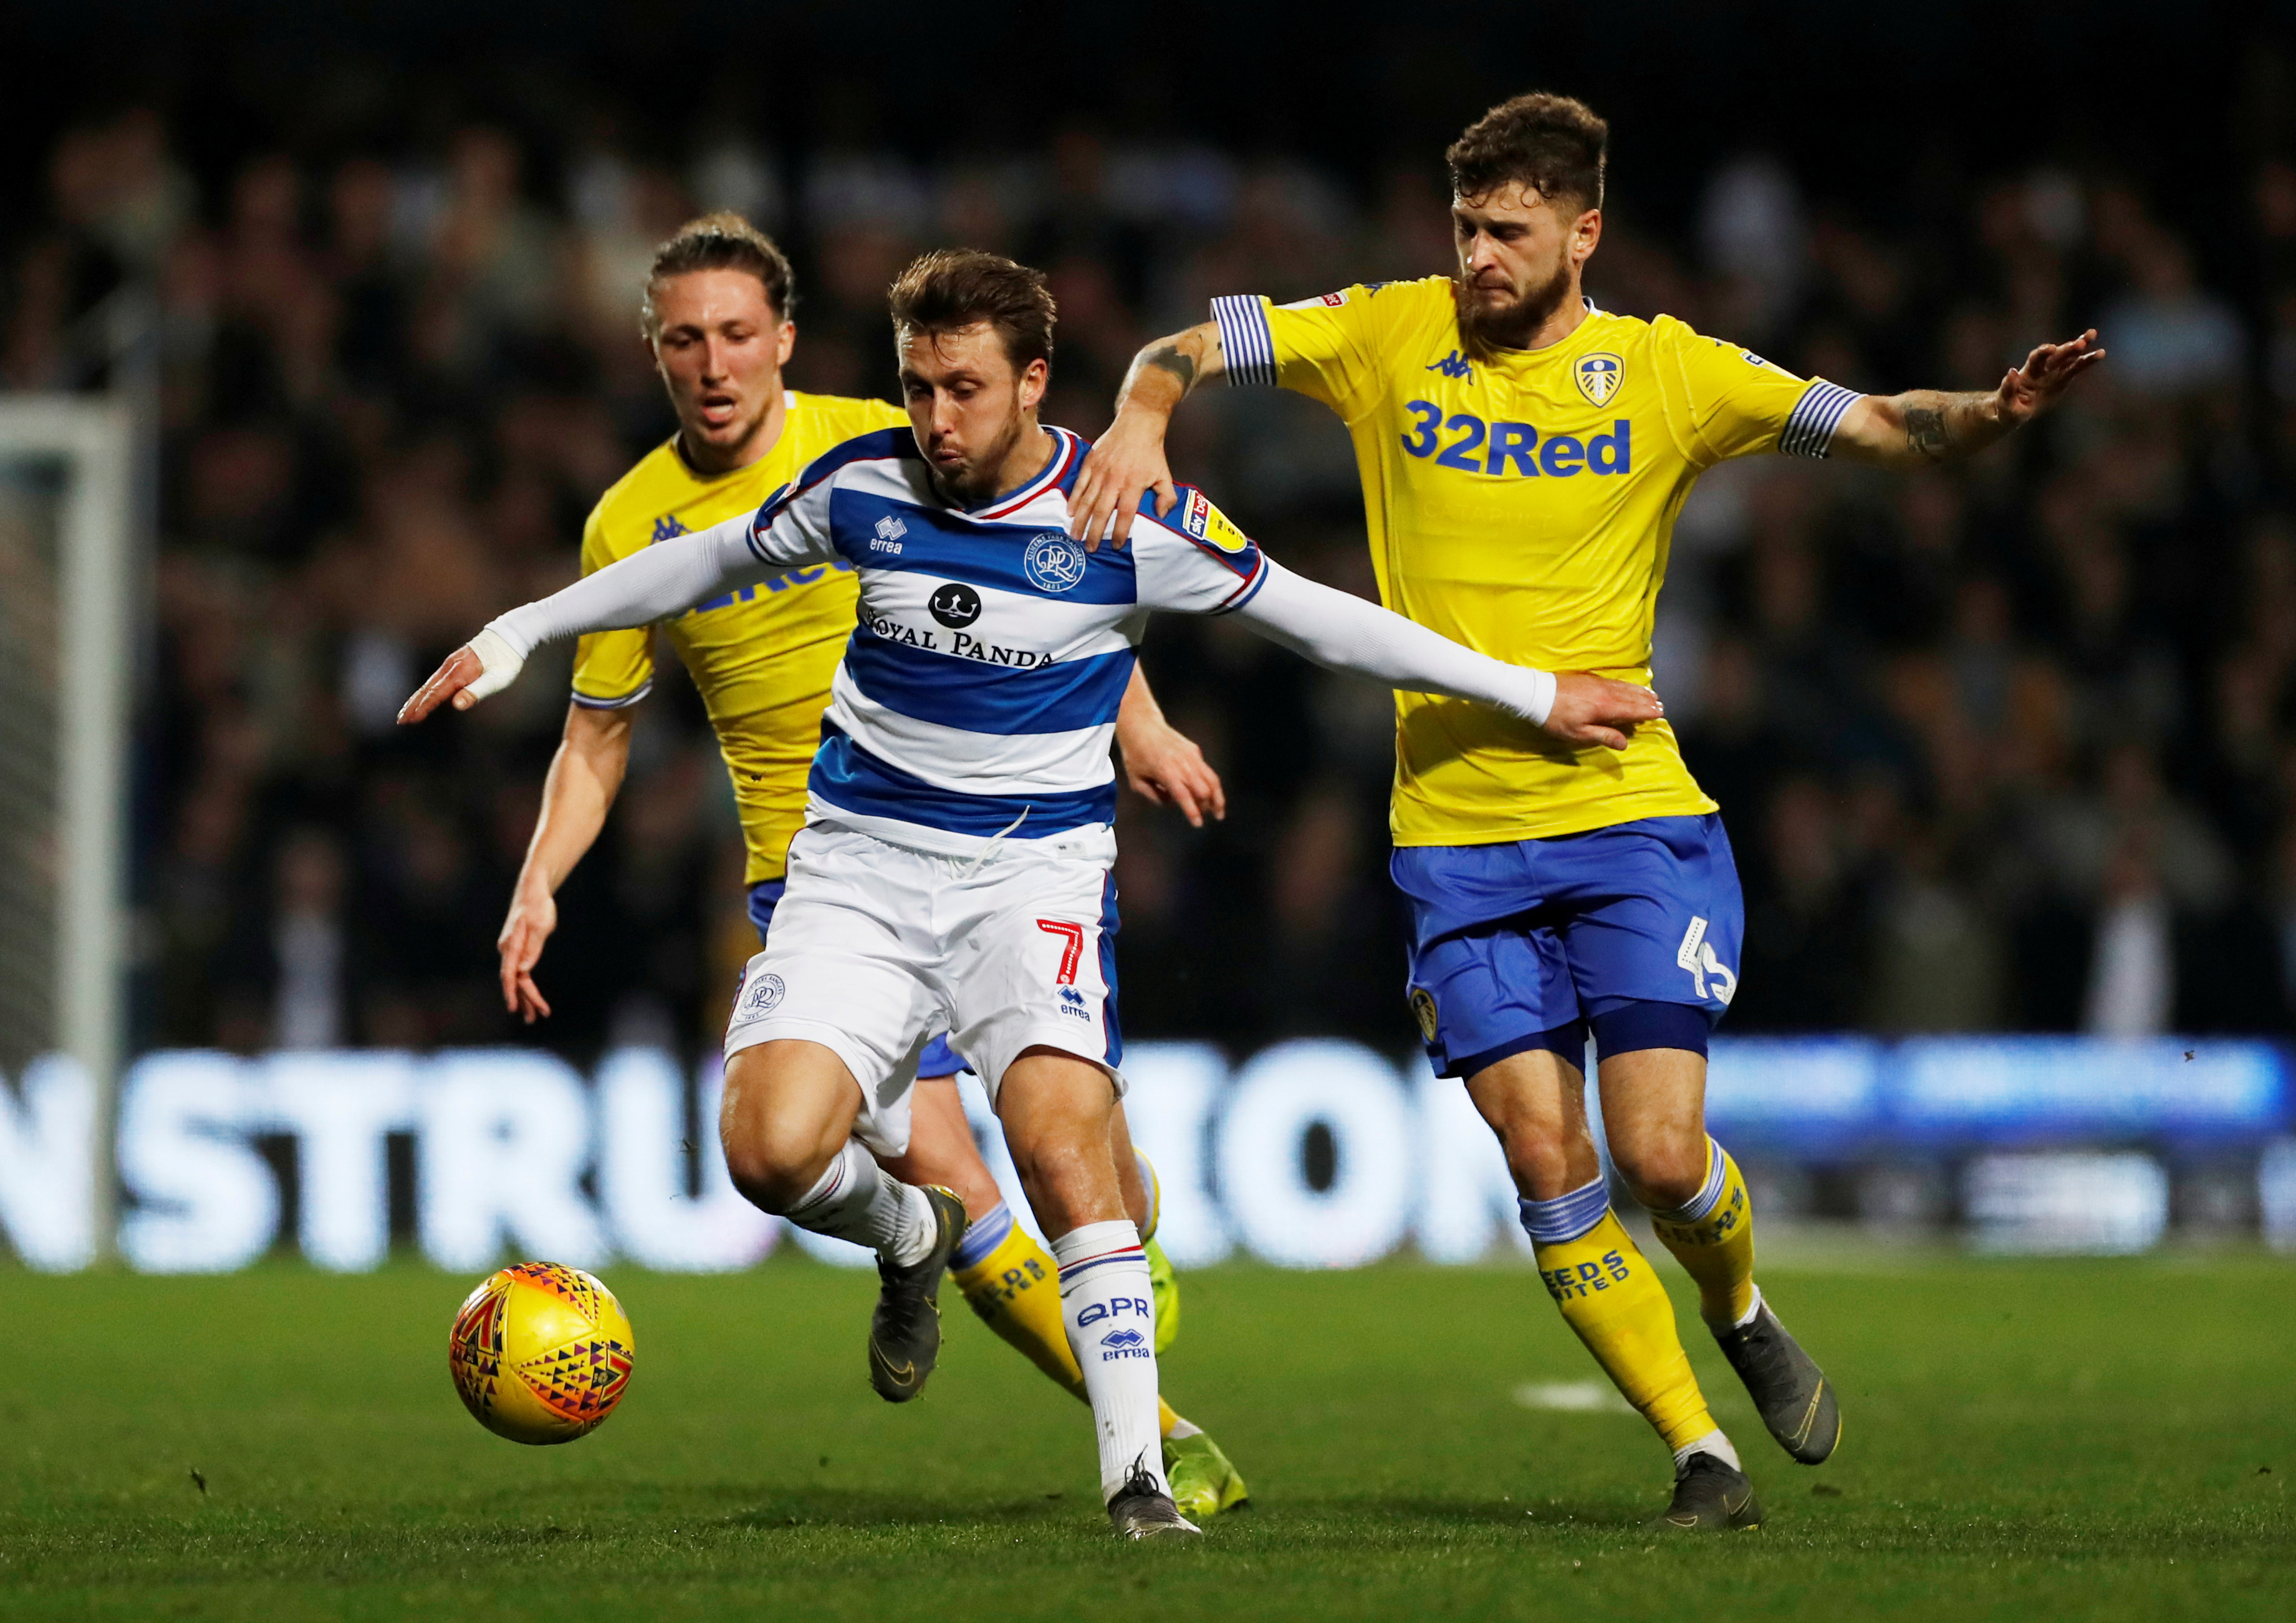 Soccer: Sheffield United sign Freeman from QPR